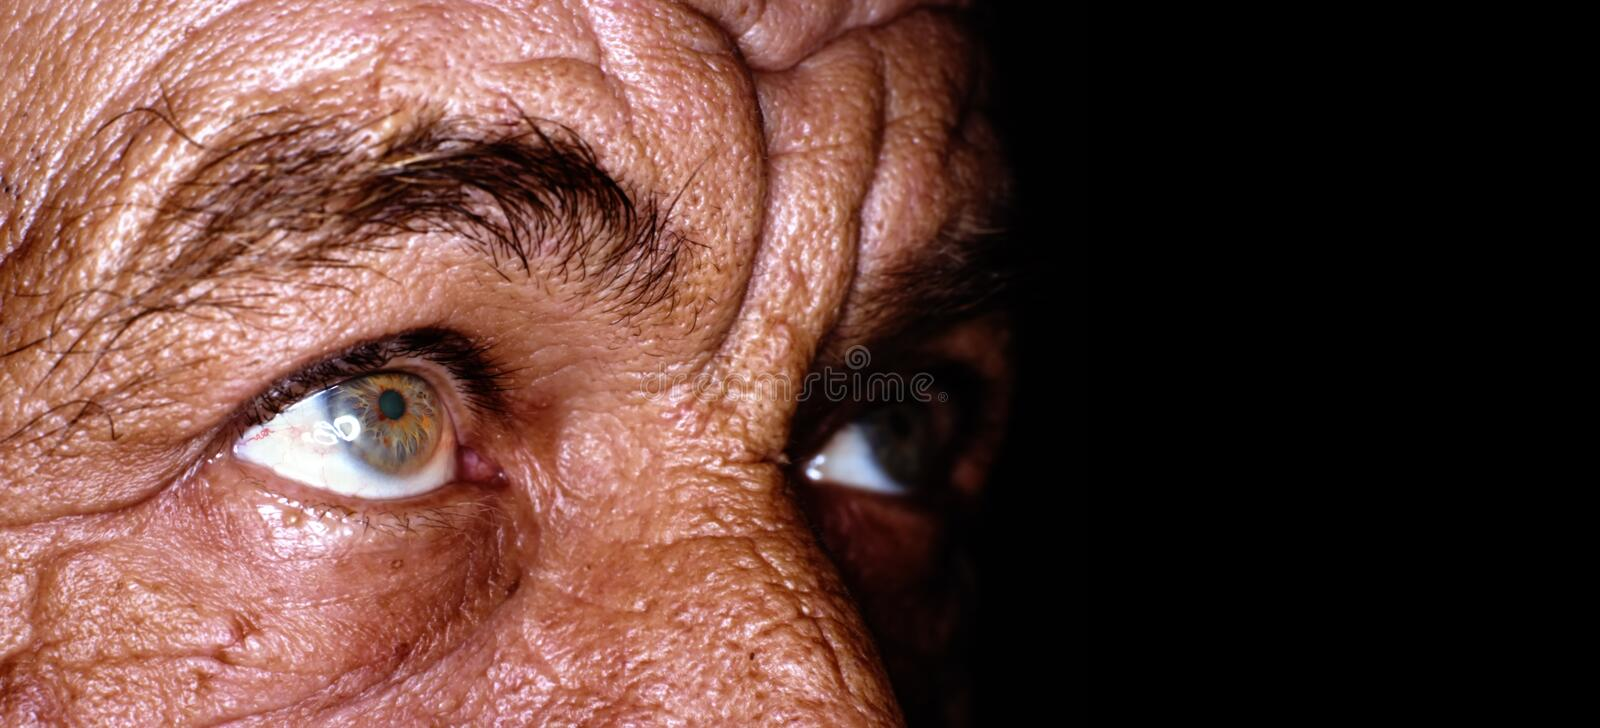 Close up of old man eyes